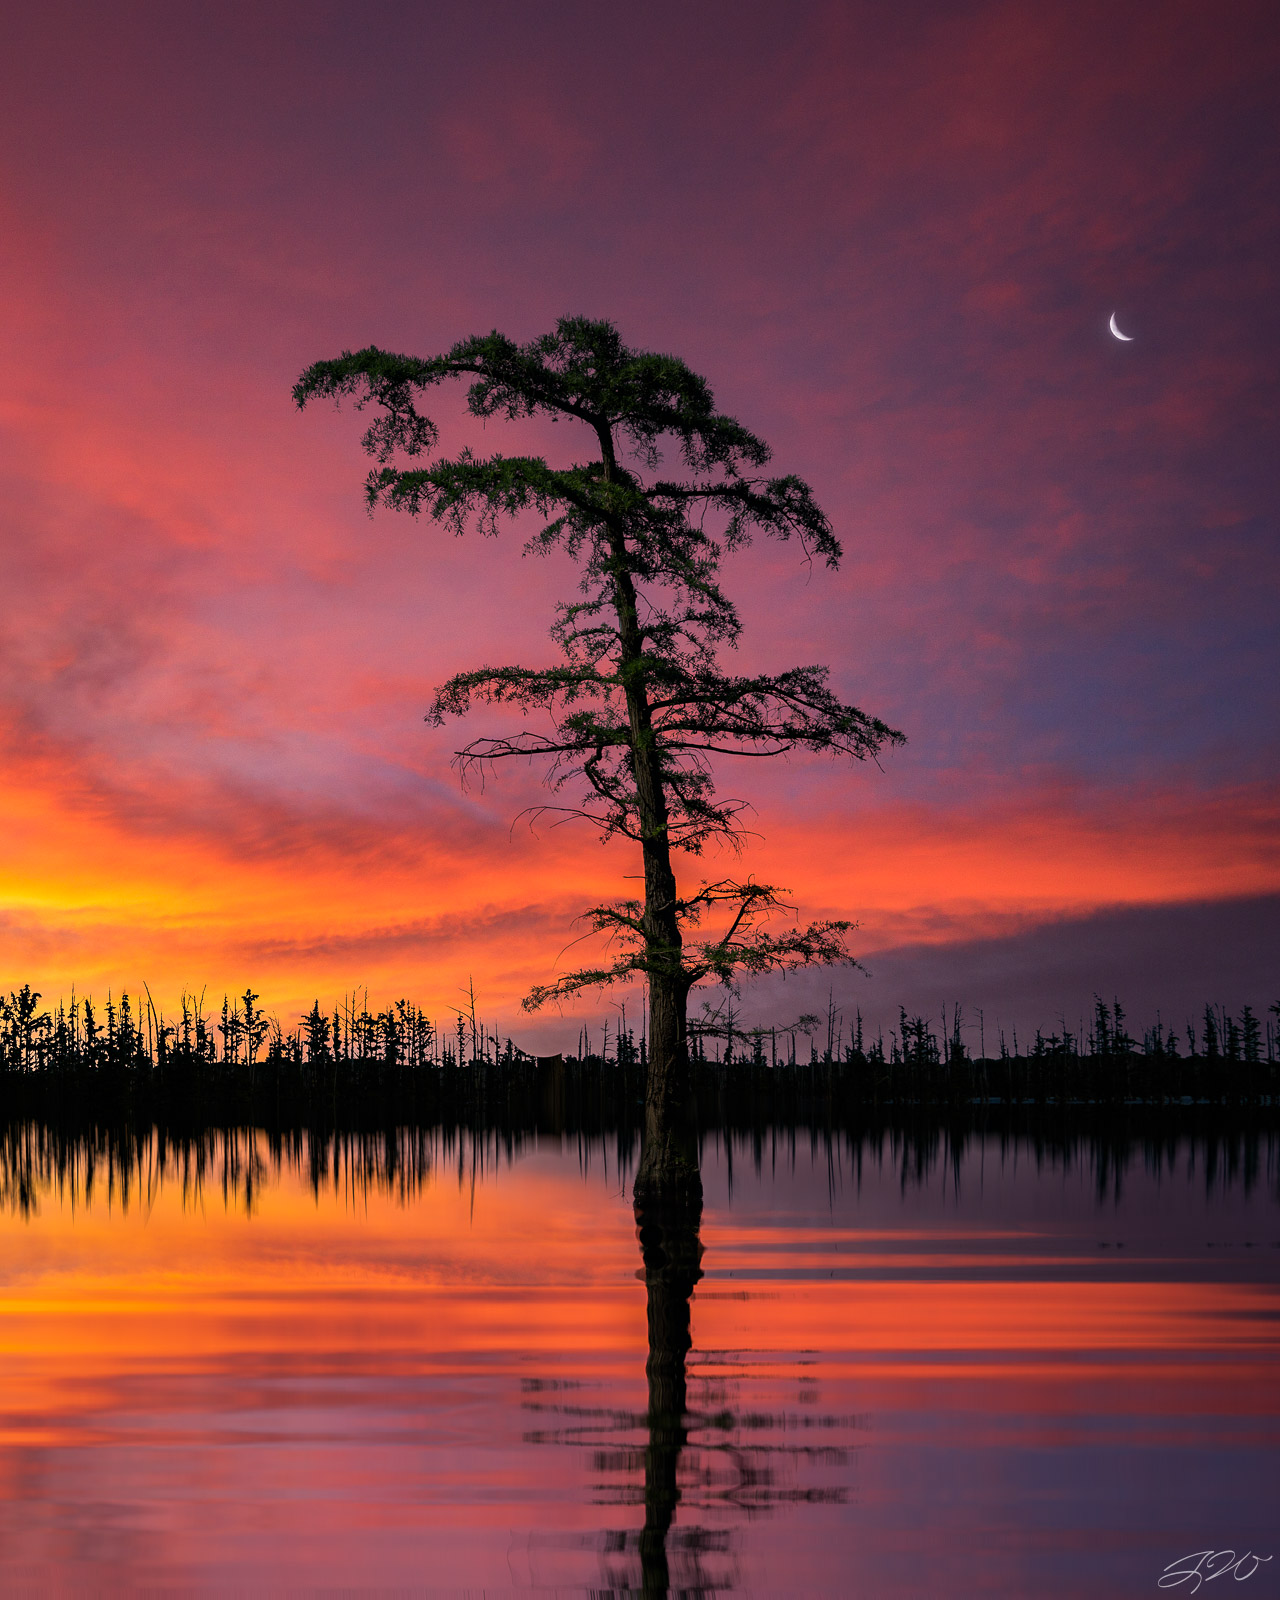 bald cypress, tree, sunset, moon, clouds, Sony Alpha, reflection, lake, photo